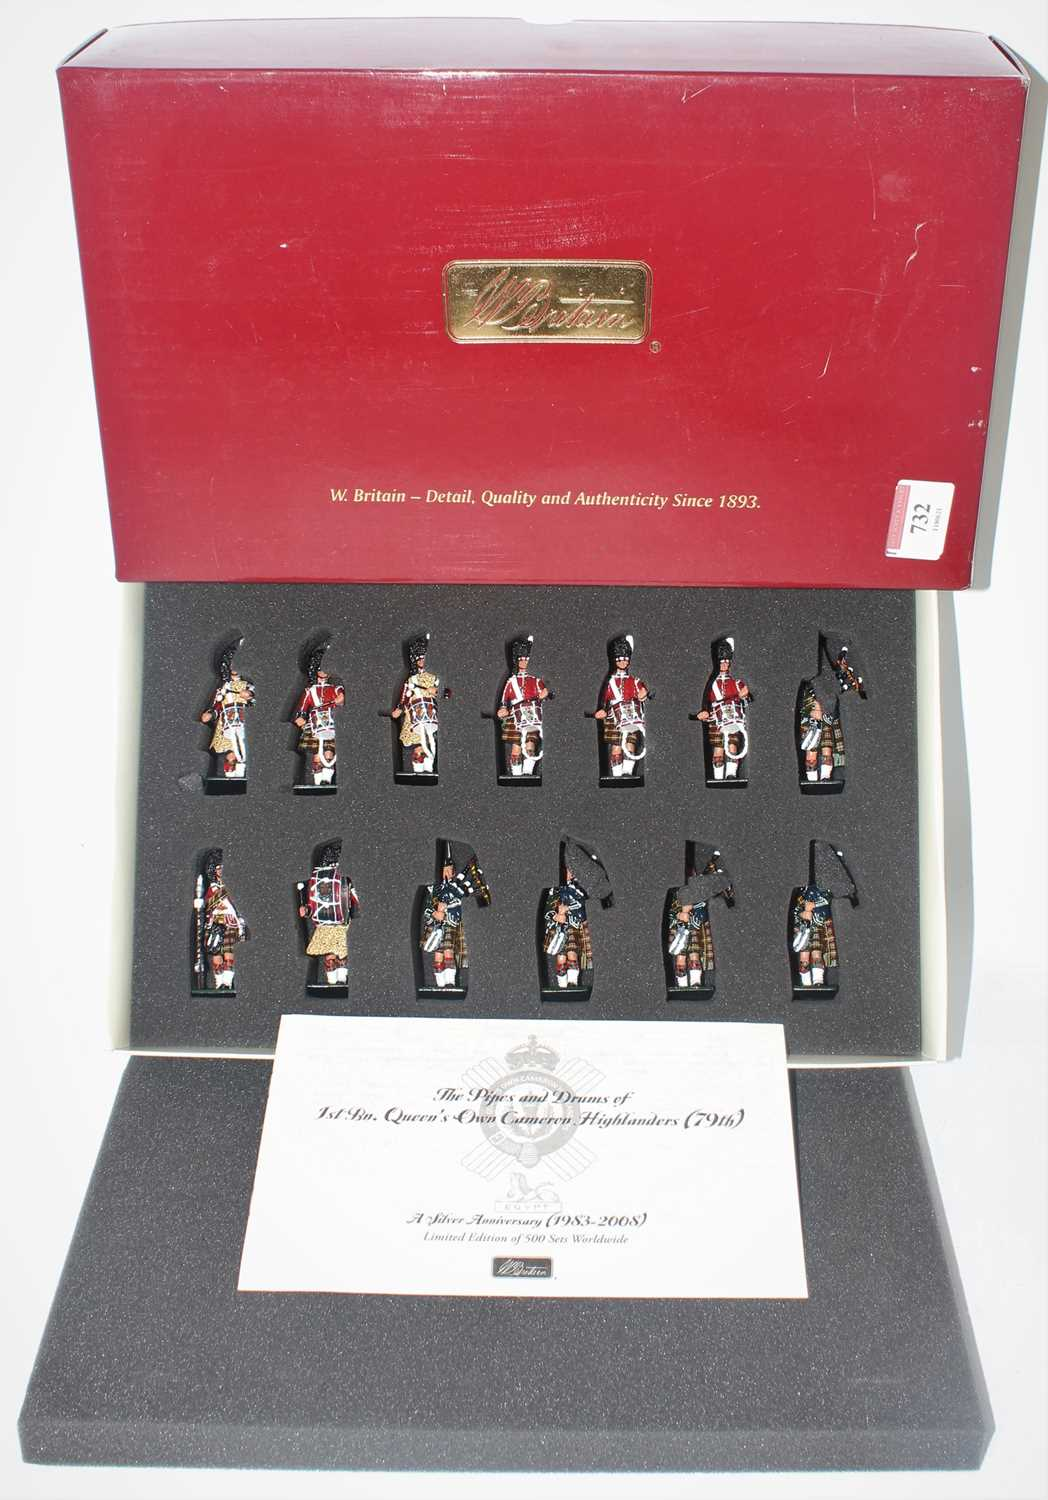 A Britains limited edition collectable modern release no. 48004 Pipes and Drums of the 1st Battalion